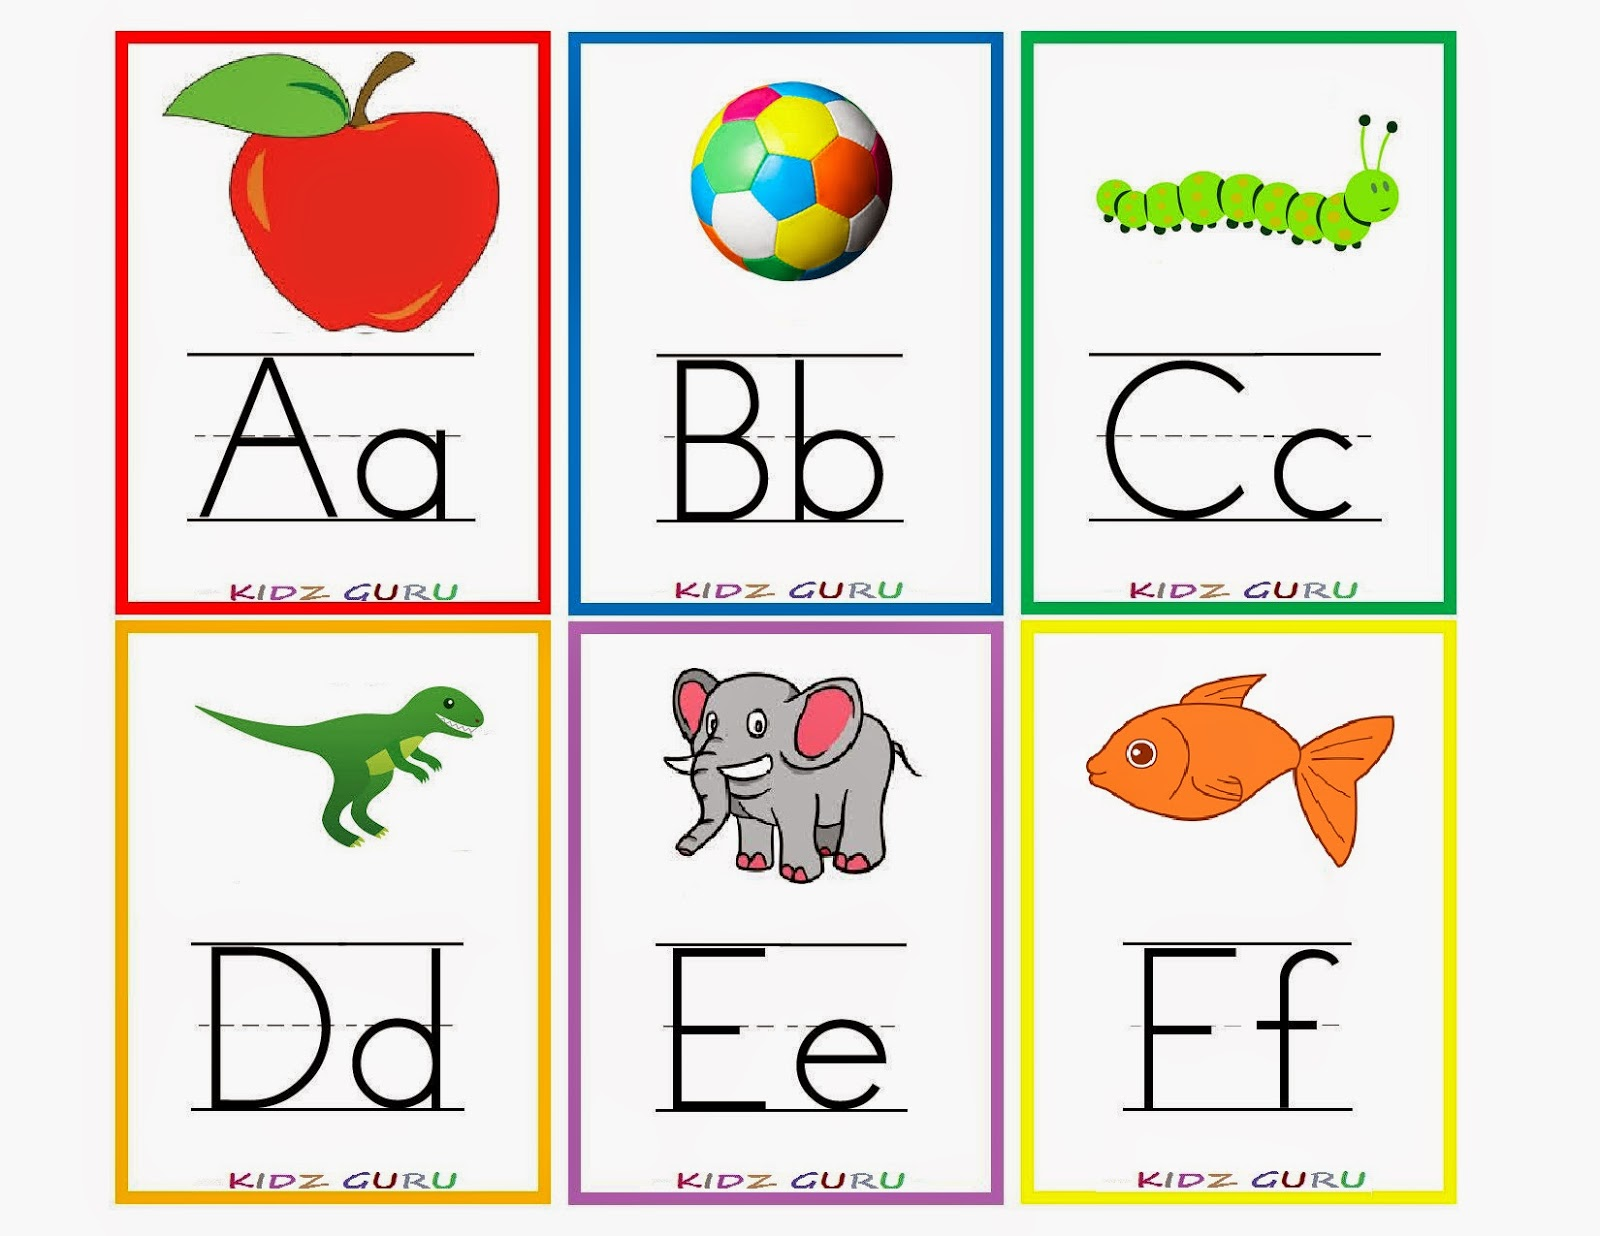 Exceptional image with printable abc flash cards